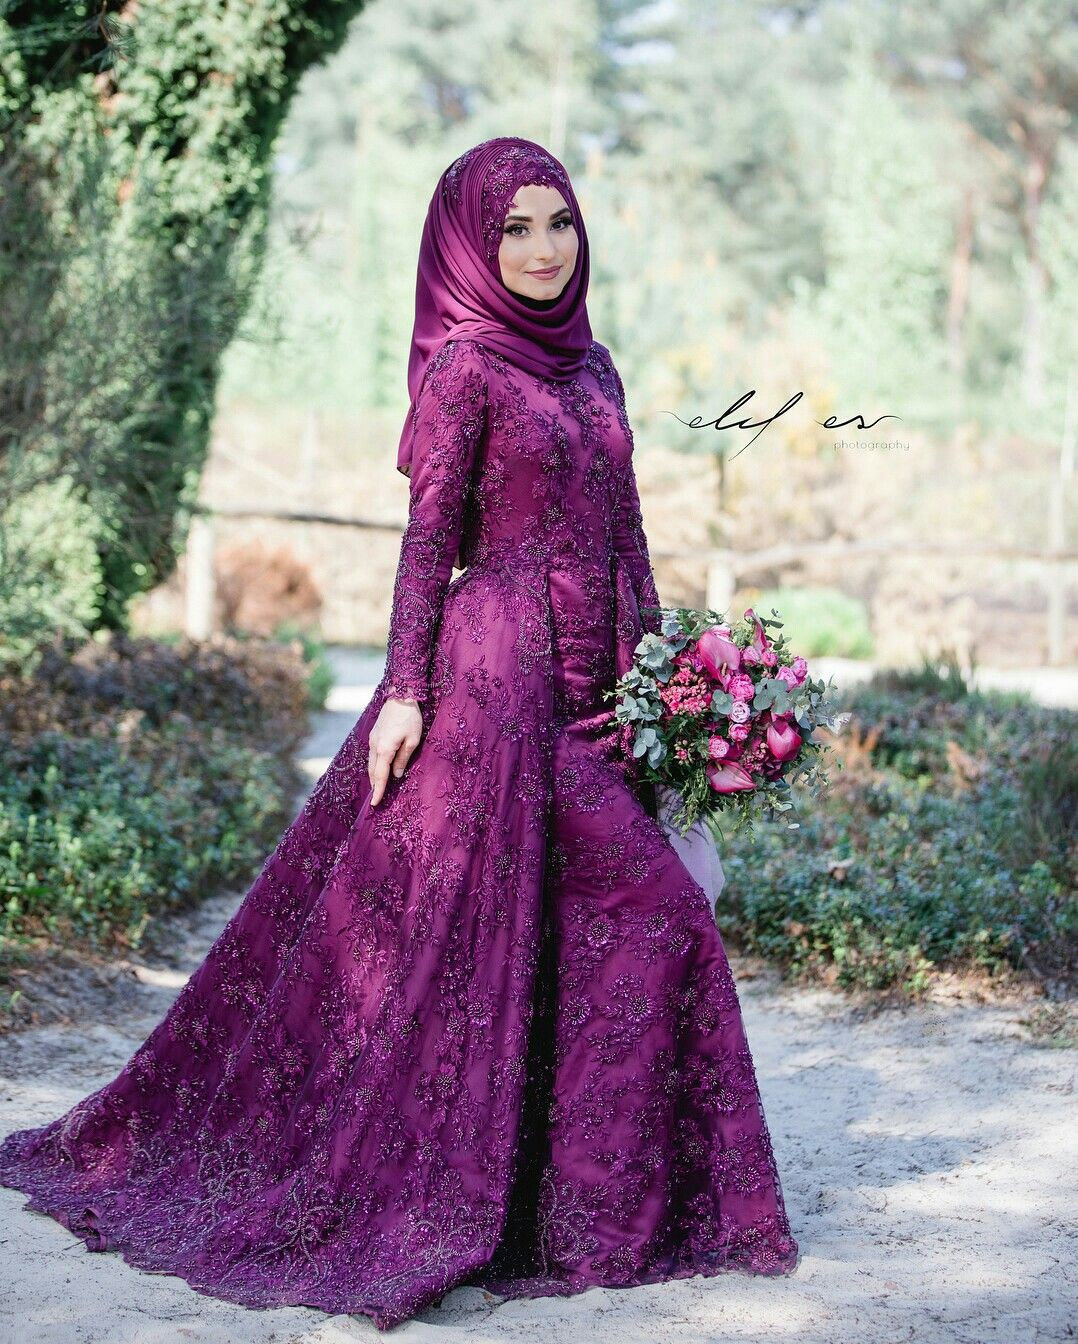 Pin By Shaufa On Awesome Hijab And Dress Prom Dresses Long With Sleeves Hijab Dress Party Muslim Wedding Dresses [ 1344 x 1078 Pixel ]